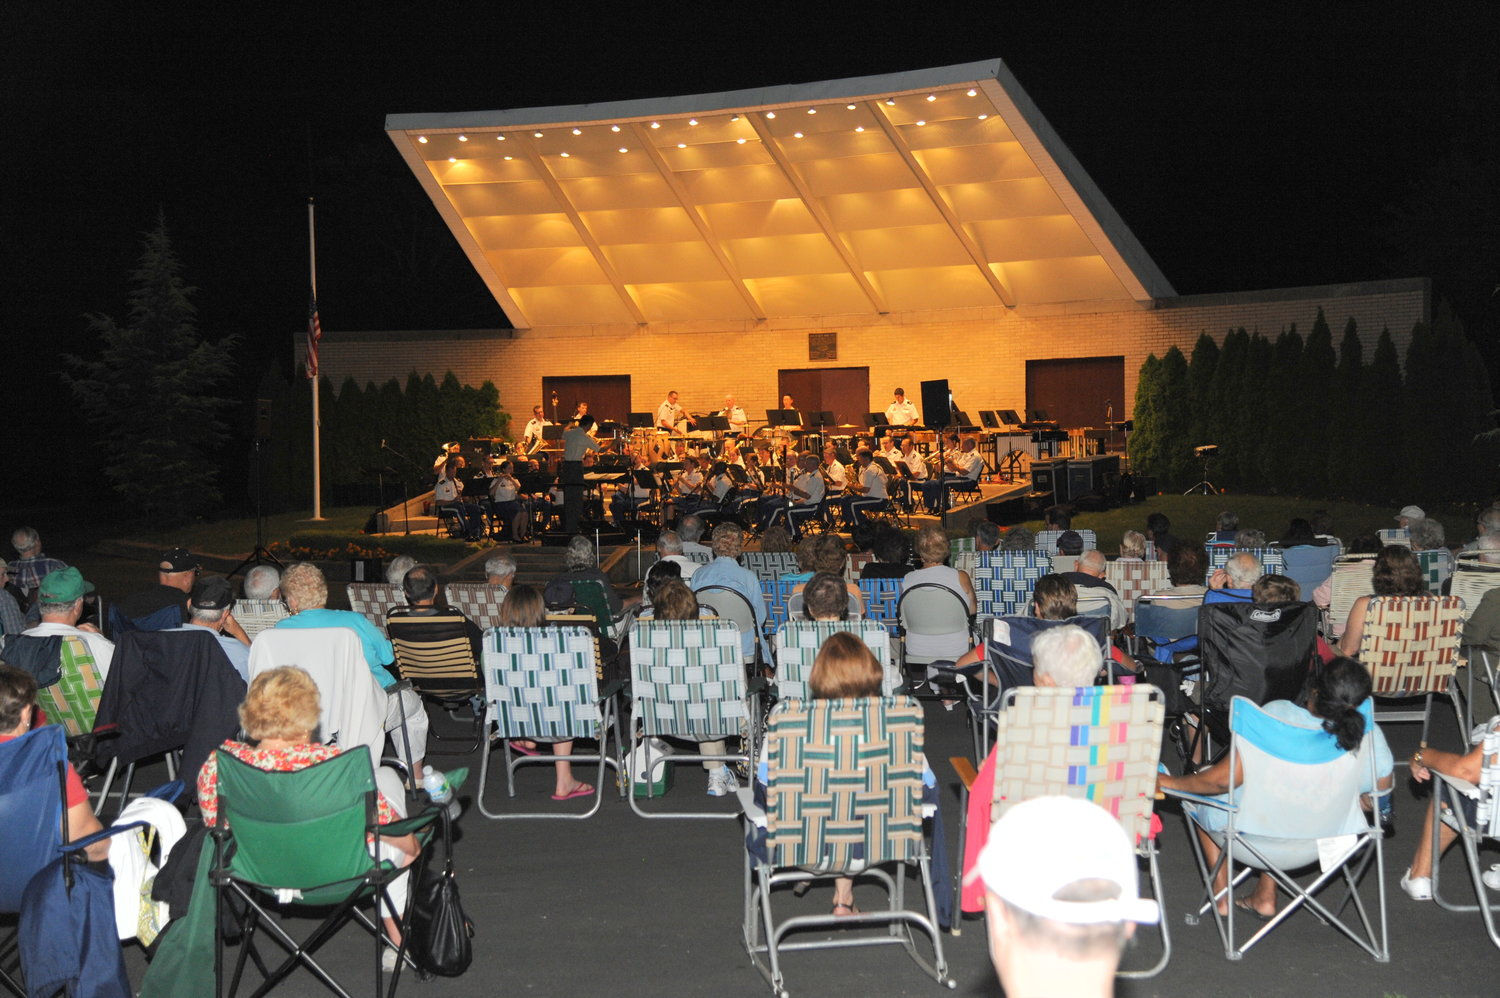 The West Point Band performance is open to the public on August 21 at 8 p.m.